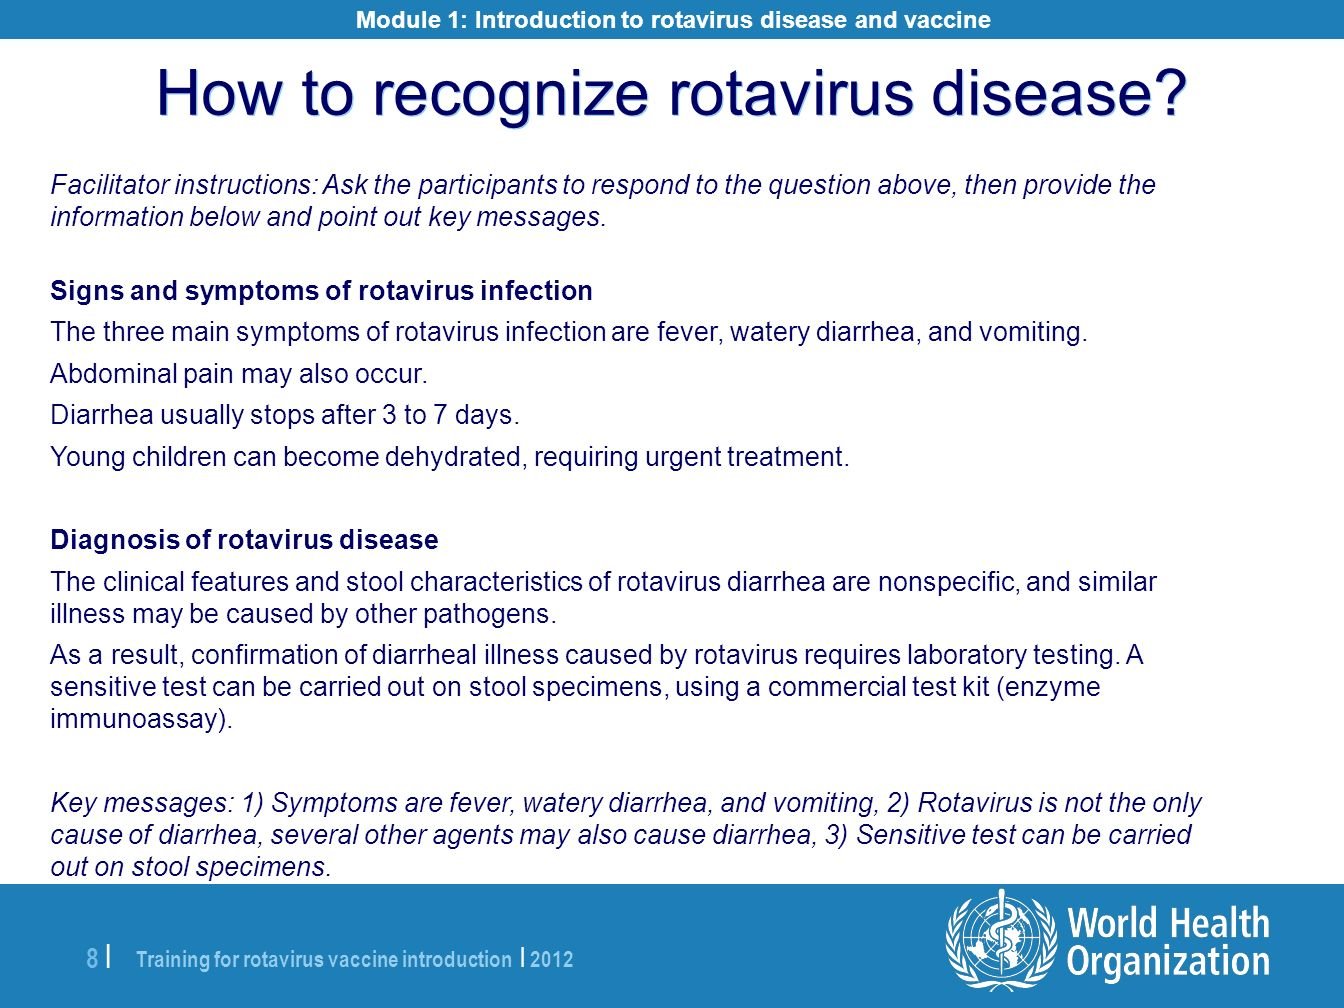 Module 1: Introduction to rotavirus disease and vaccine